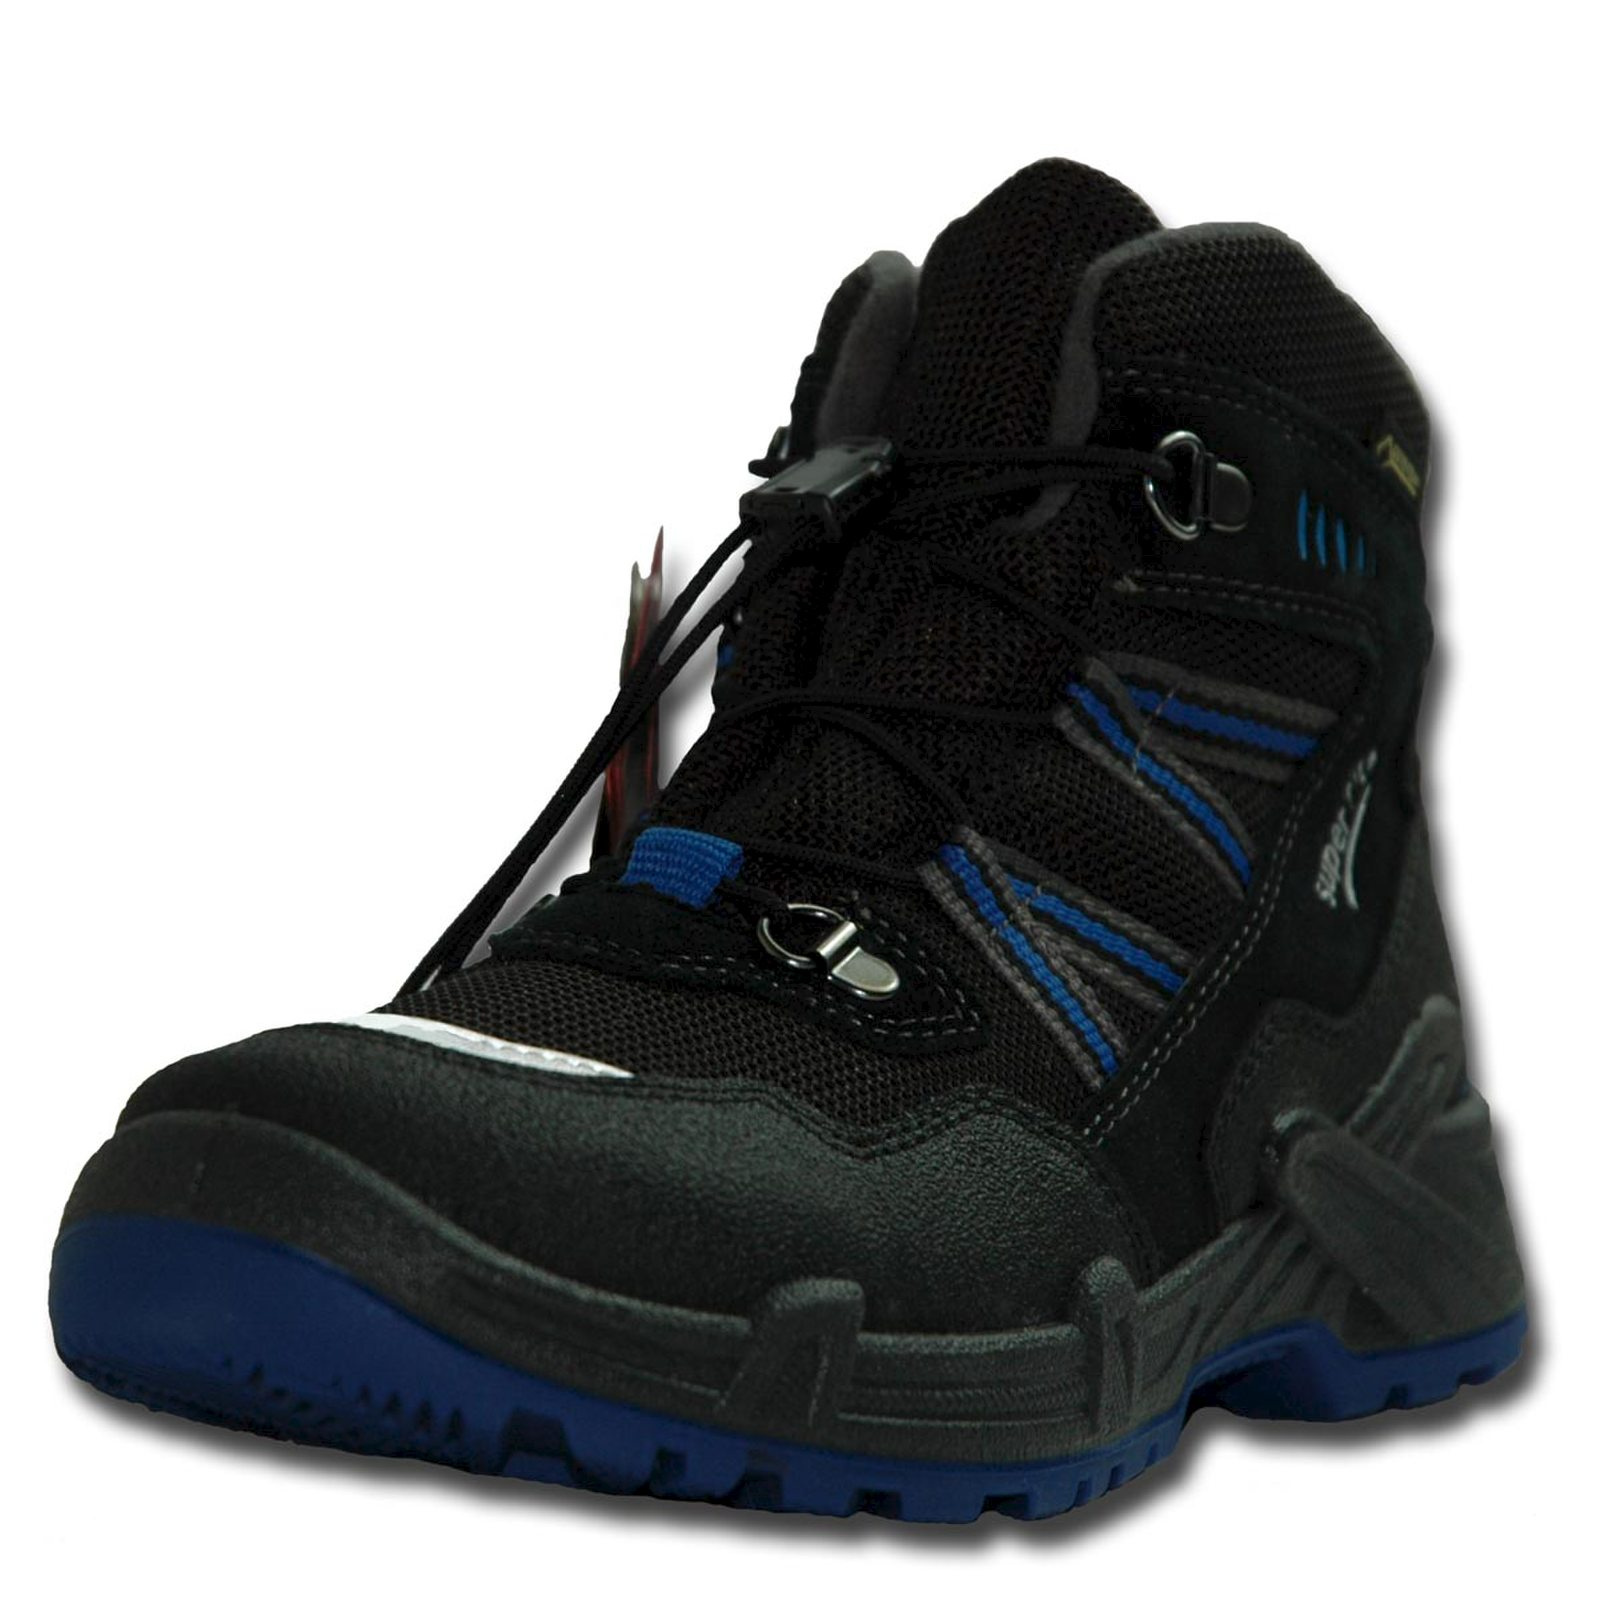 Show Title Legero Wide Snow Original Canyon About Superfit Boots For Young Of Details FeetBlackblue DIEH92YW